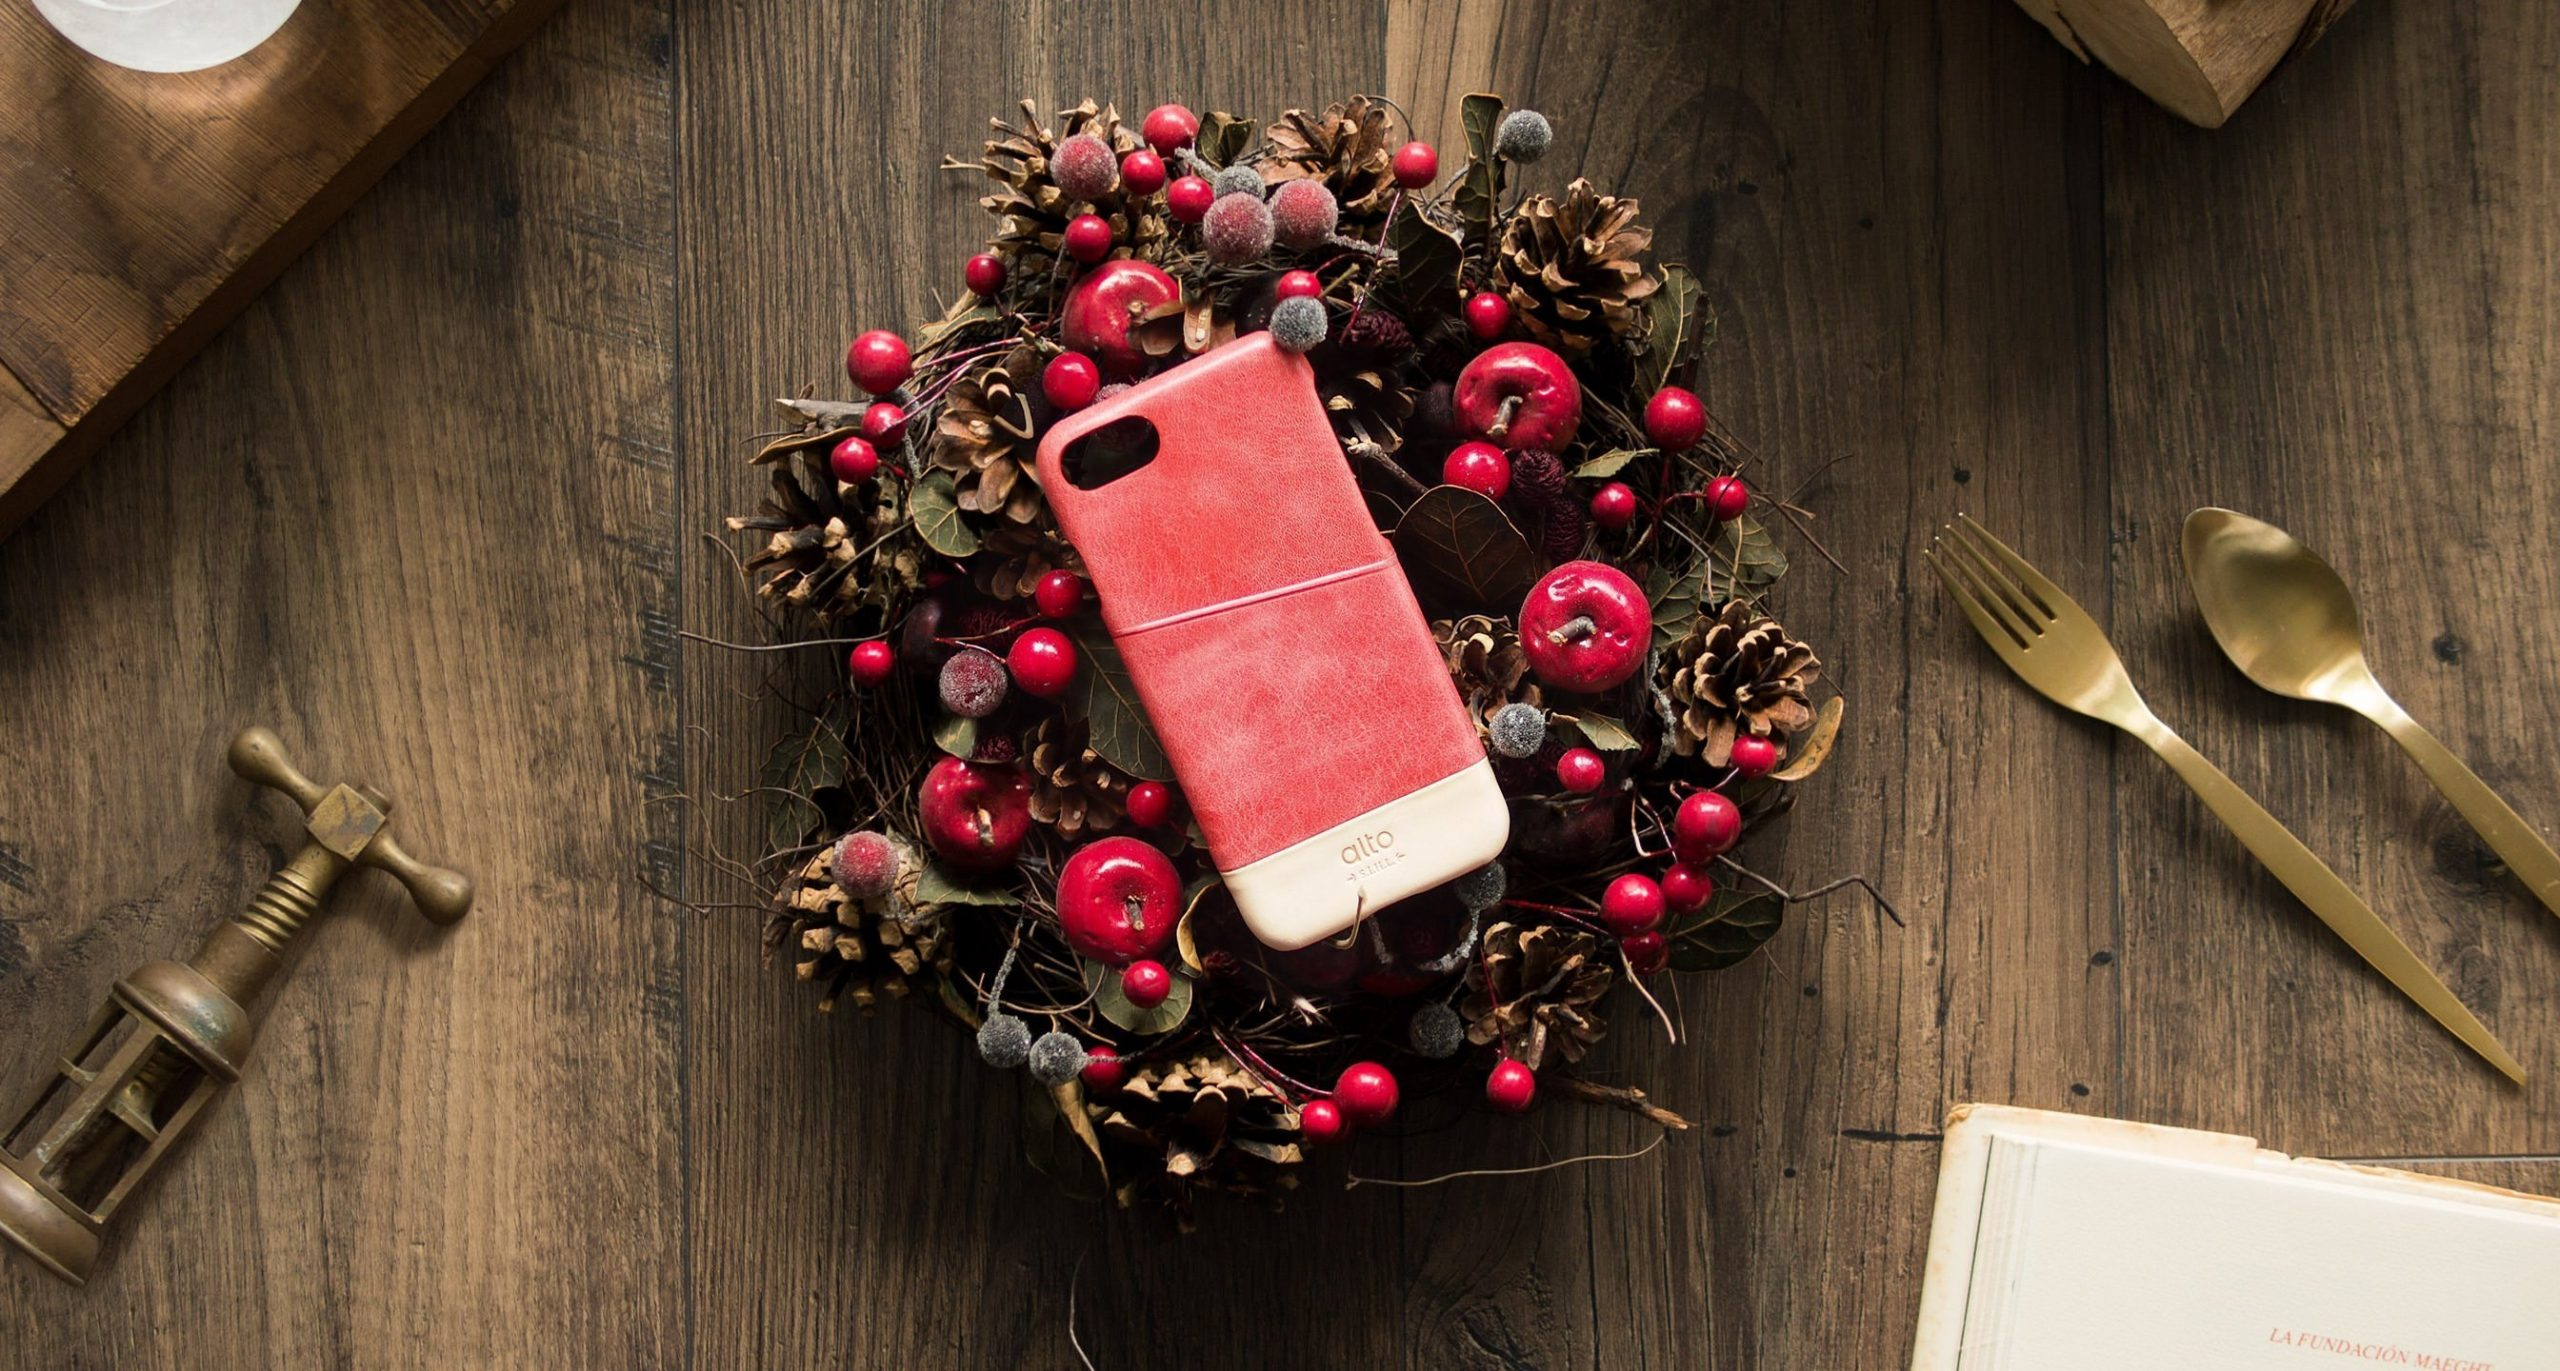 The highly recommended gifts for 2016 Christmas